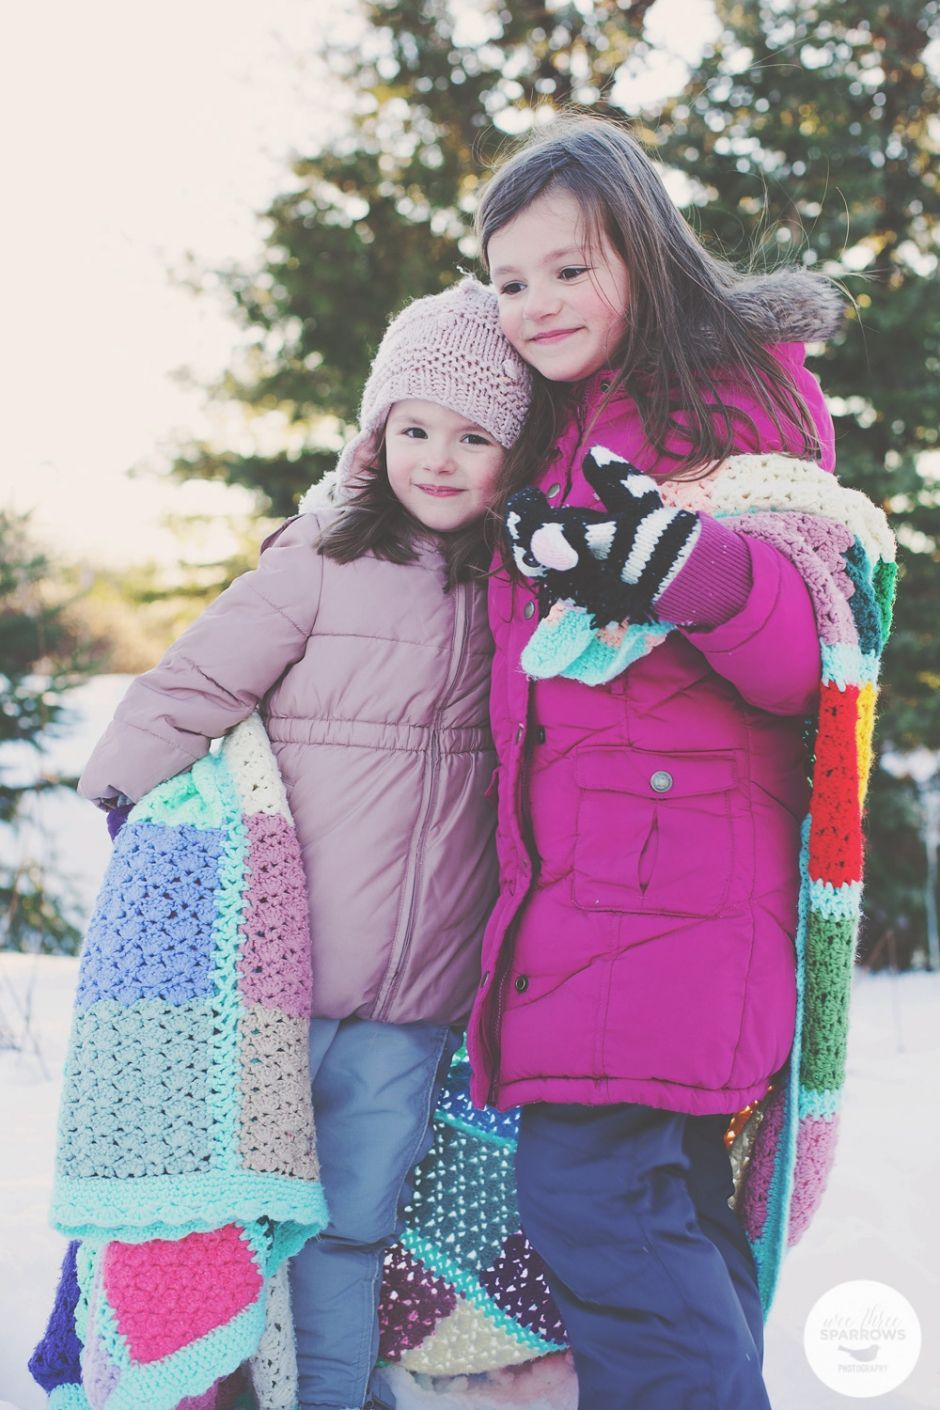 My Girls, Outdoor Winter Session, Snow Session, Wee Three Sparrows Photography, Toronto Photographer, Toronto Lifestyle Photographer, Toronto Family Photographer #torontophotographer #lifestylephotography #wintersession